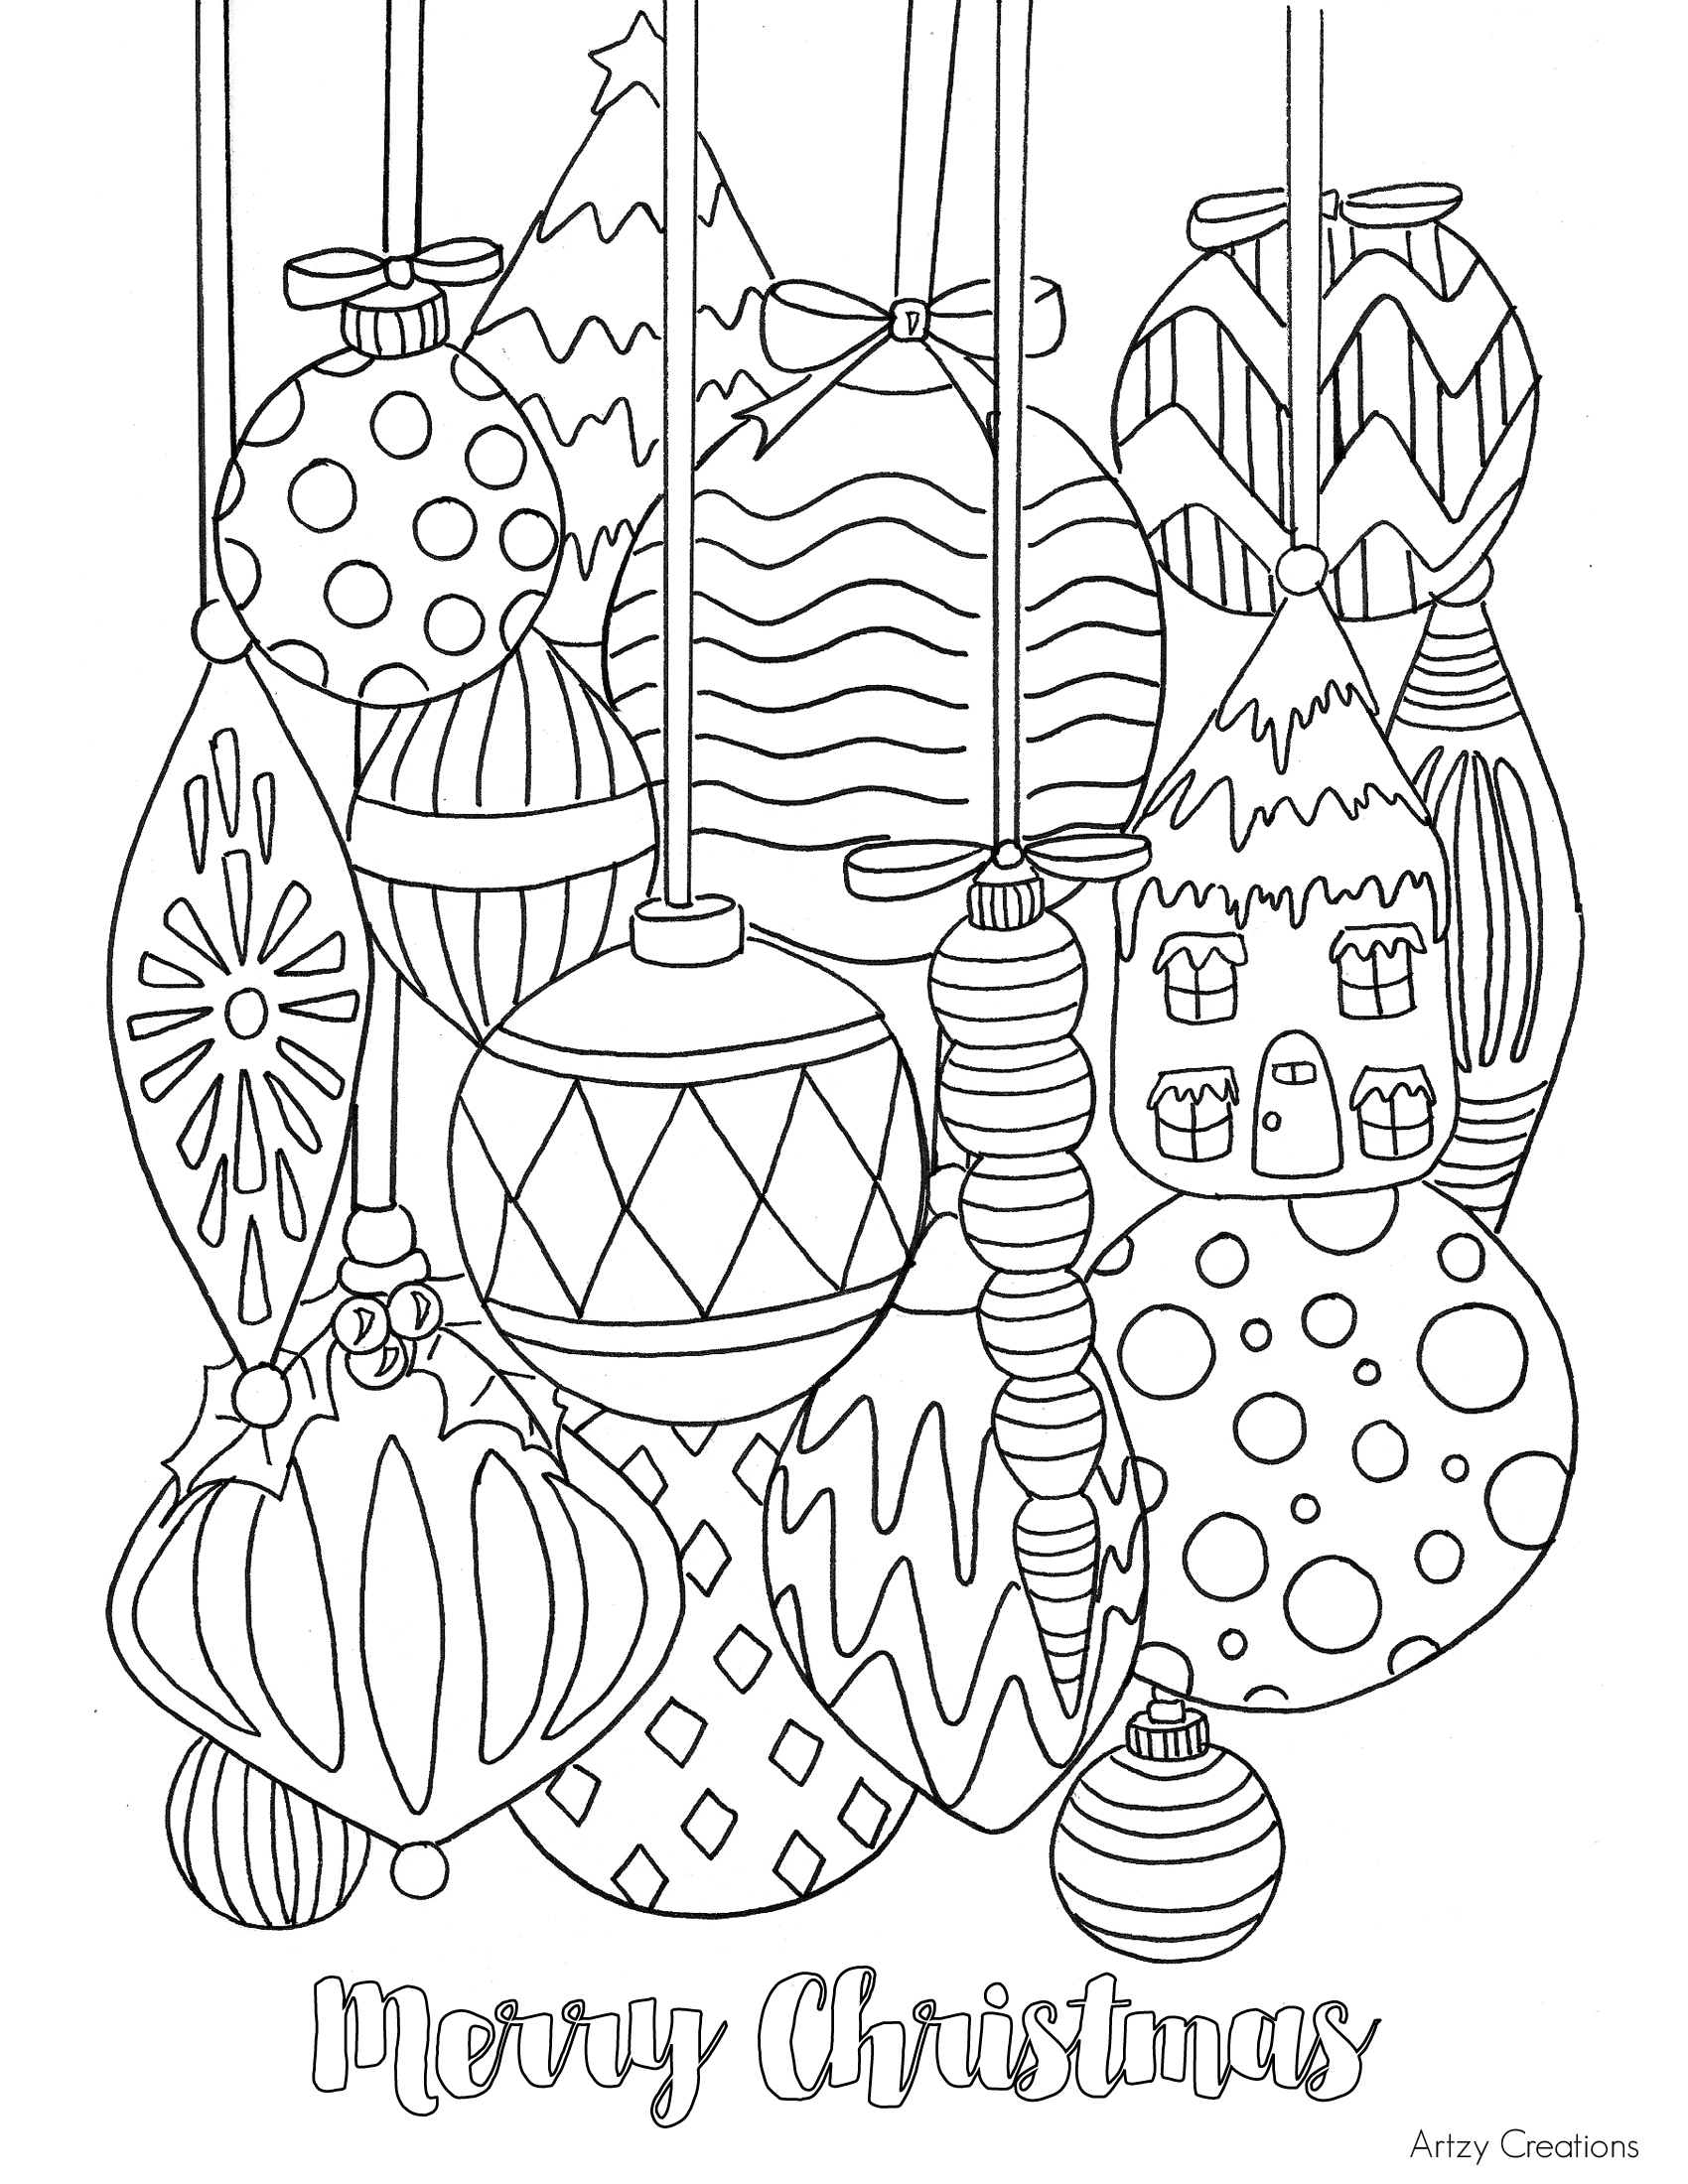 Coloring Pages Christmas Ornaments Color Pages free christmas ornament coloring page artzycreations com download your here